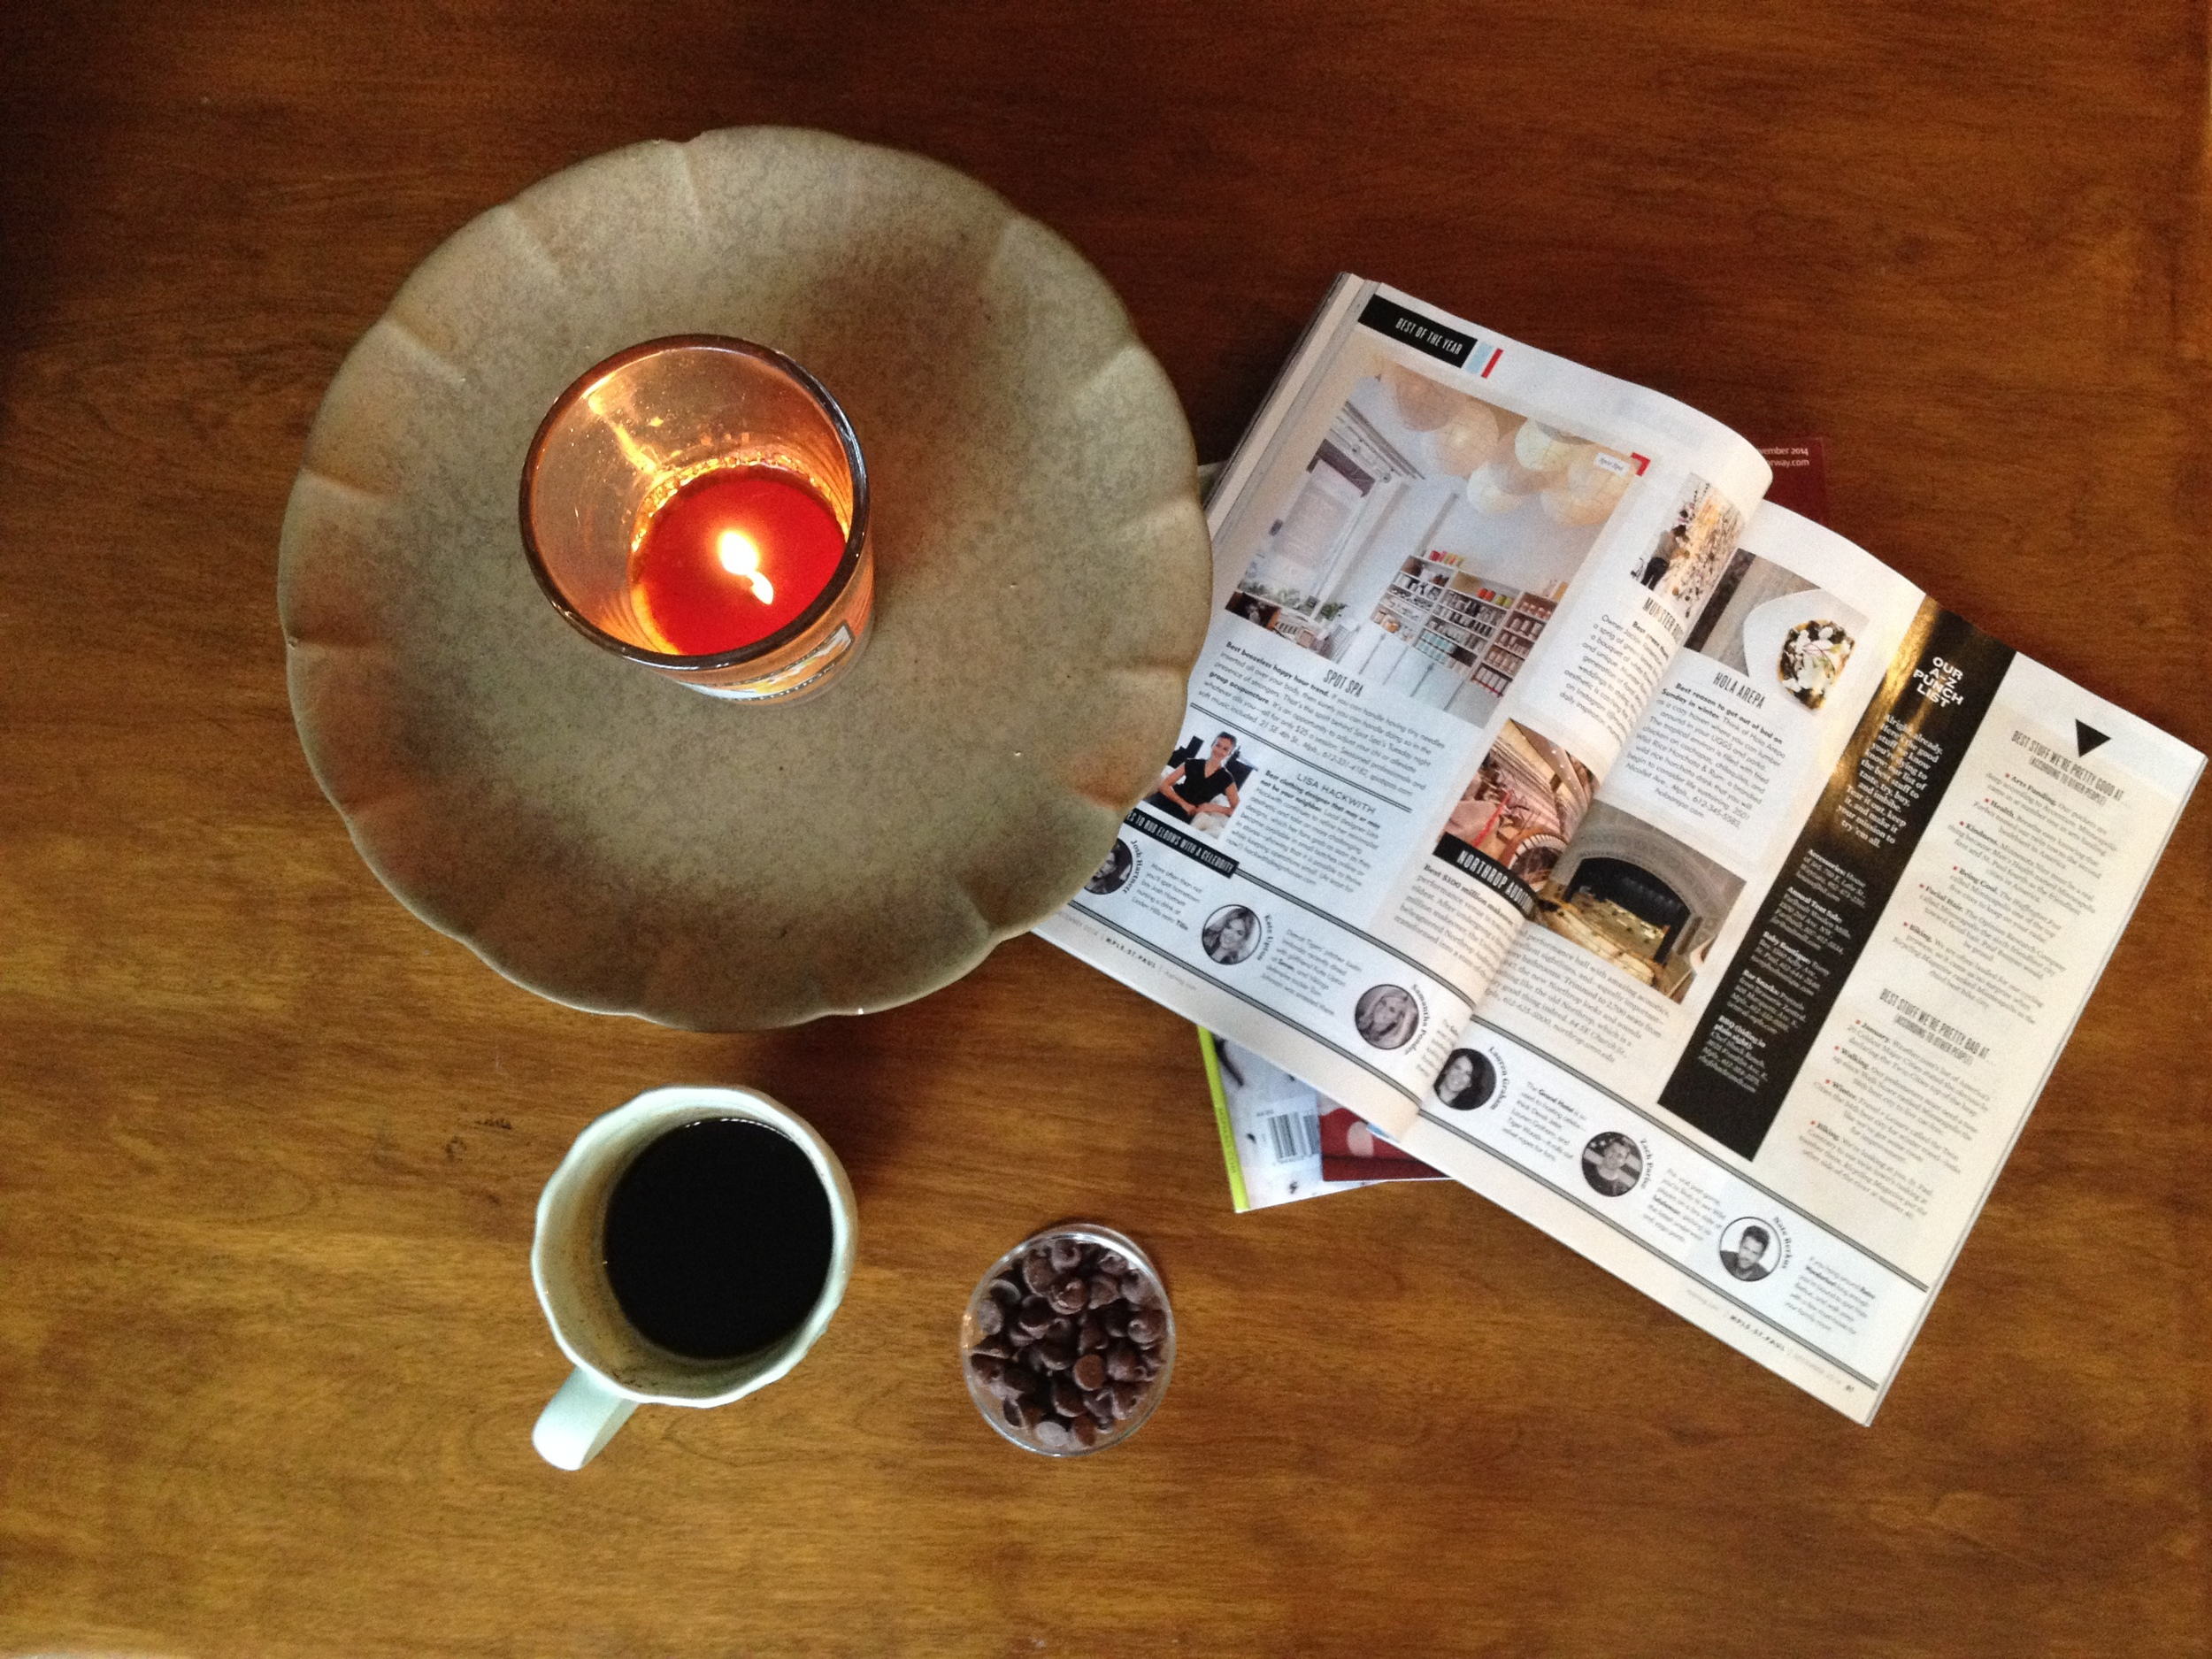 Candle + coffee + chocolate chips + mags = happy Sunday morning